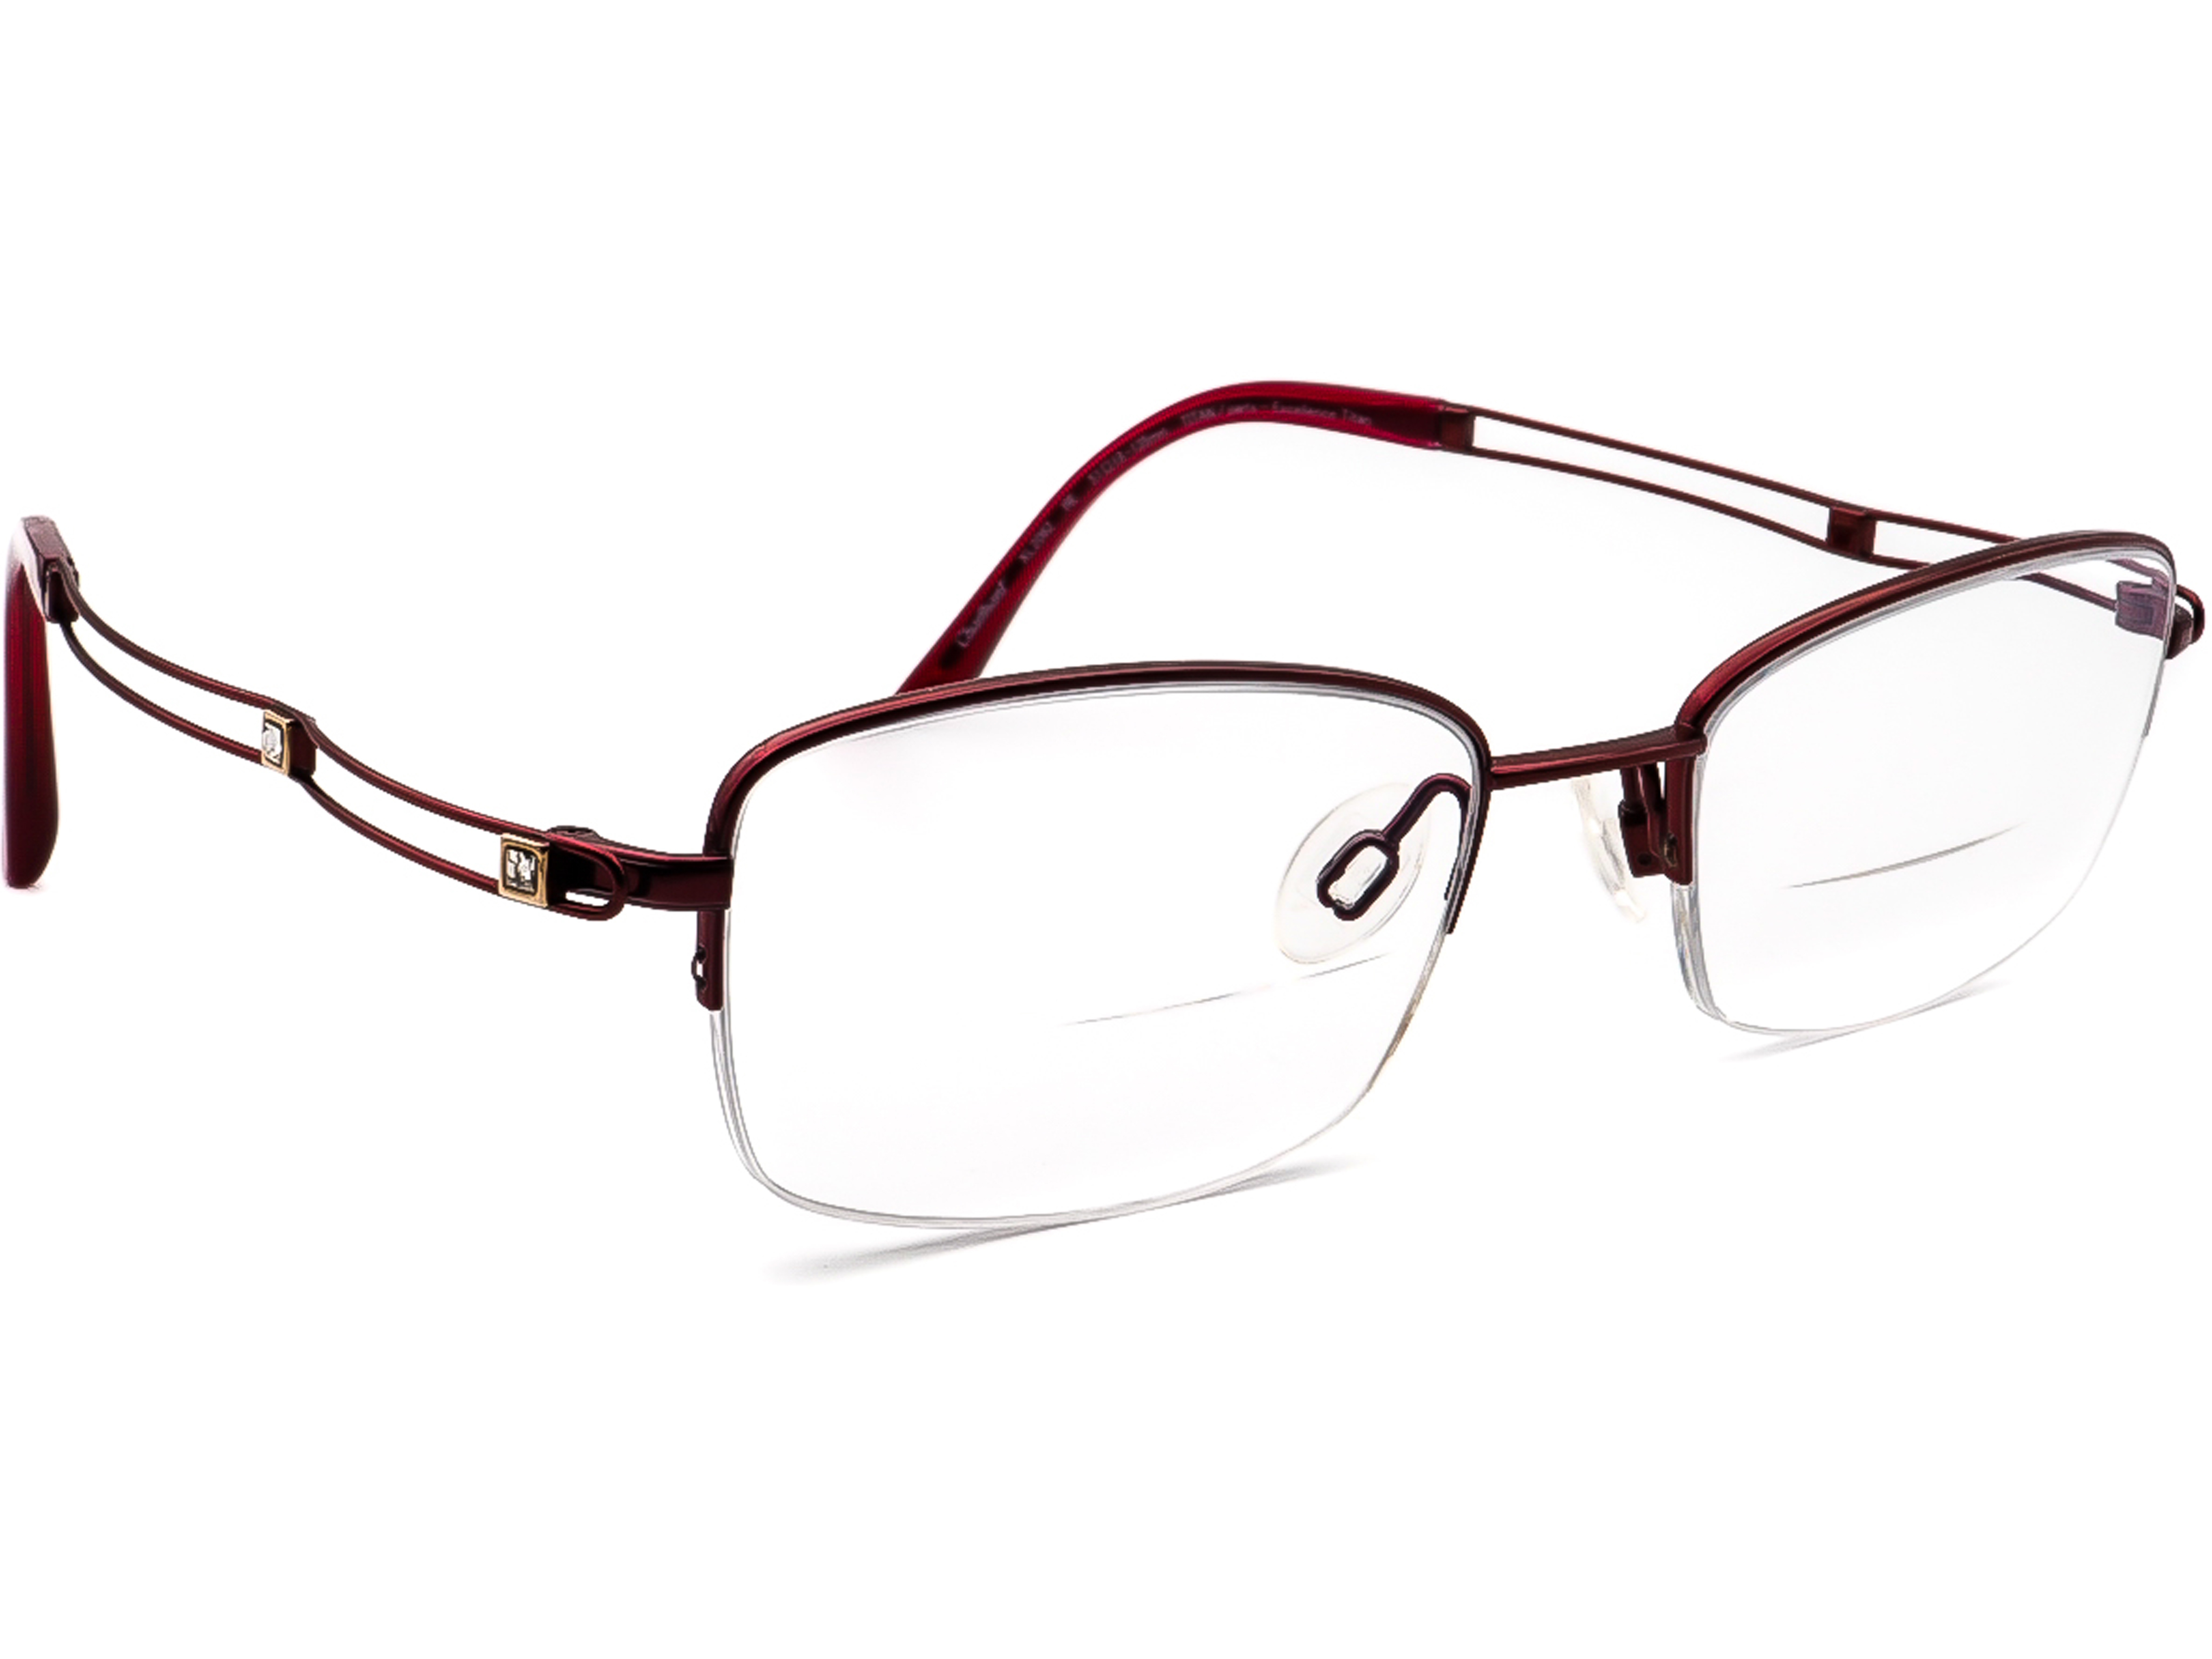 Charmant XL 2062 RE Titan Line Art Eyeglasses